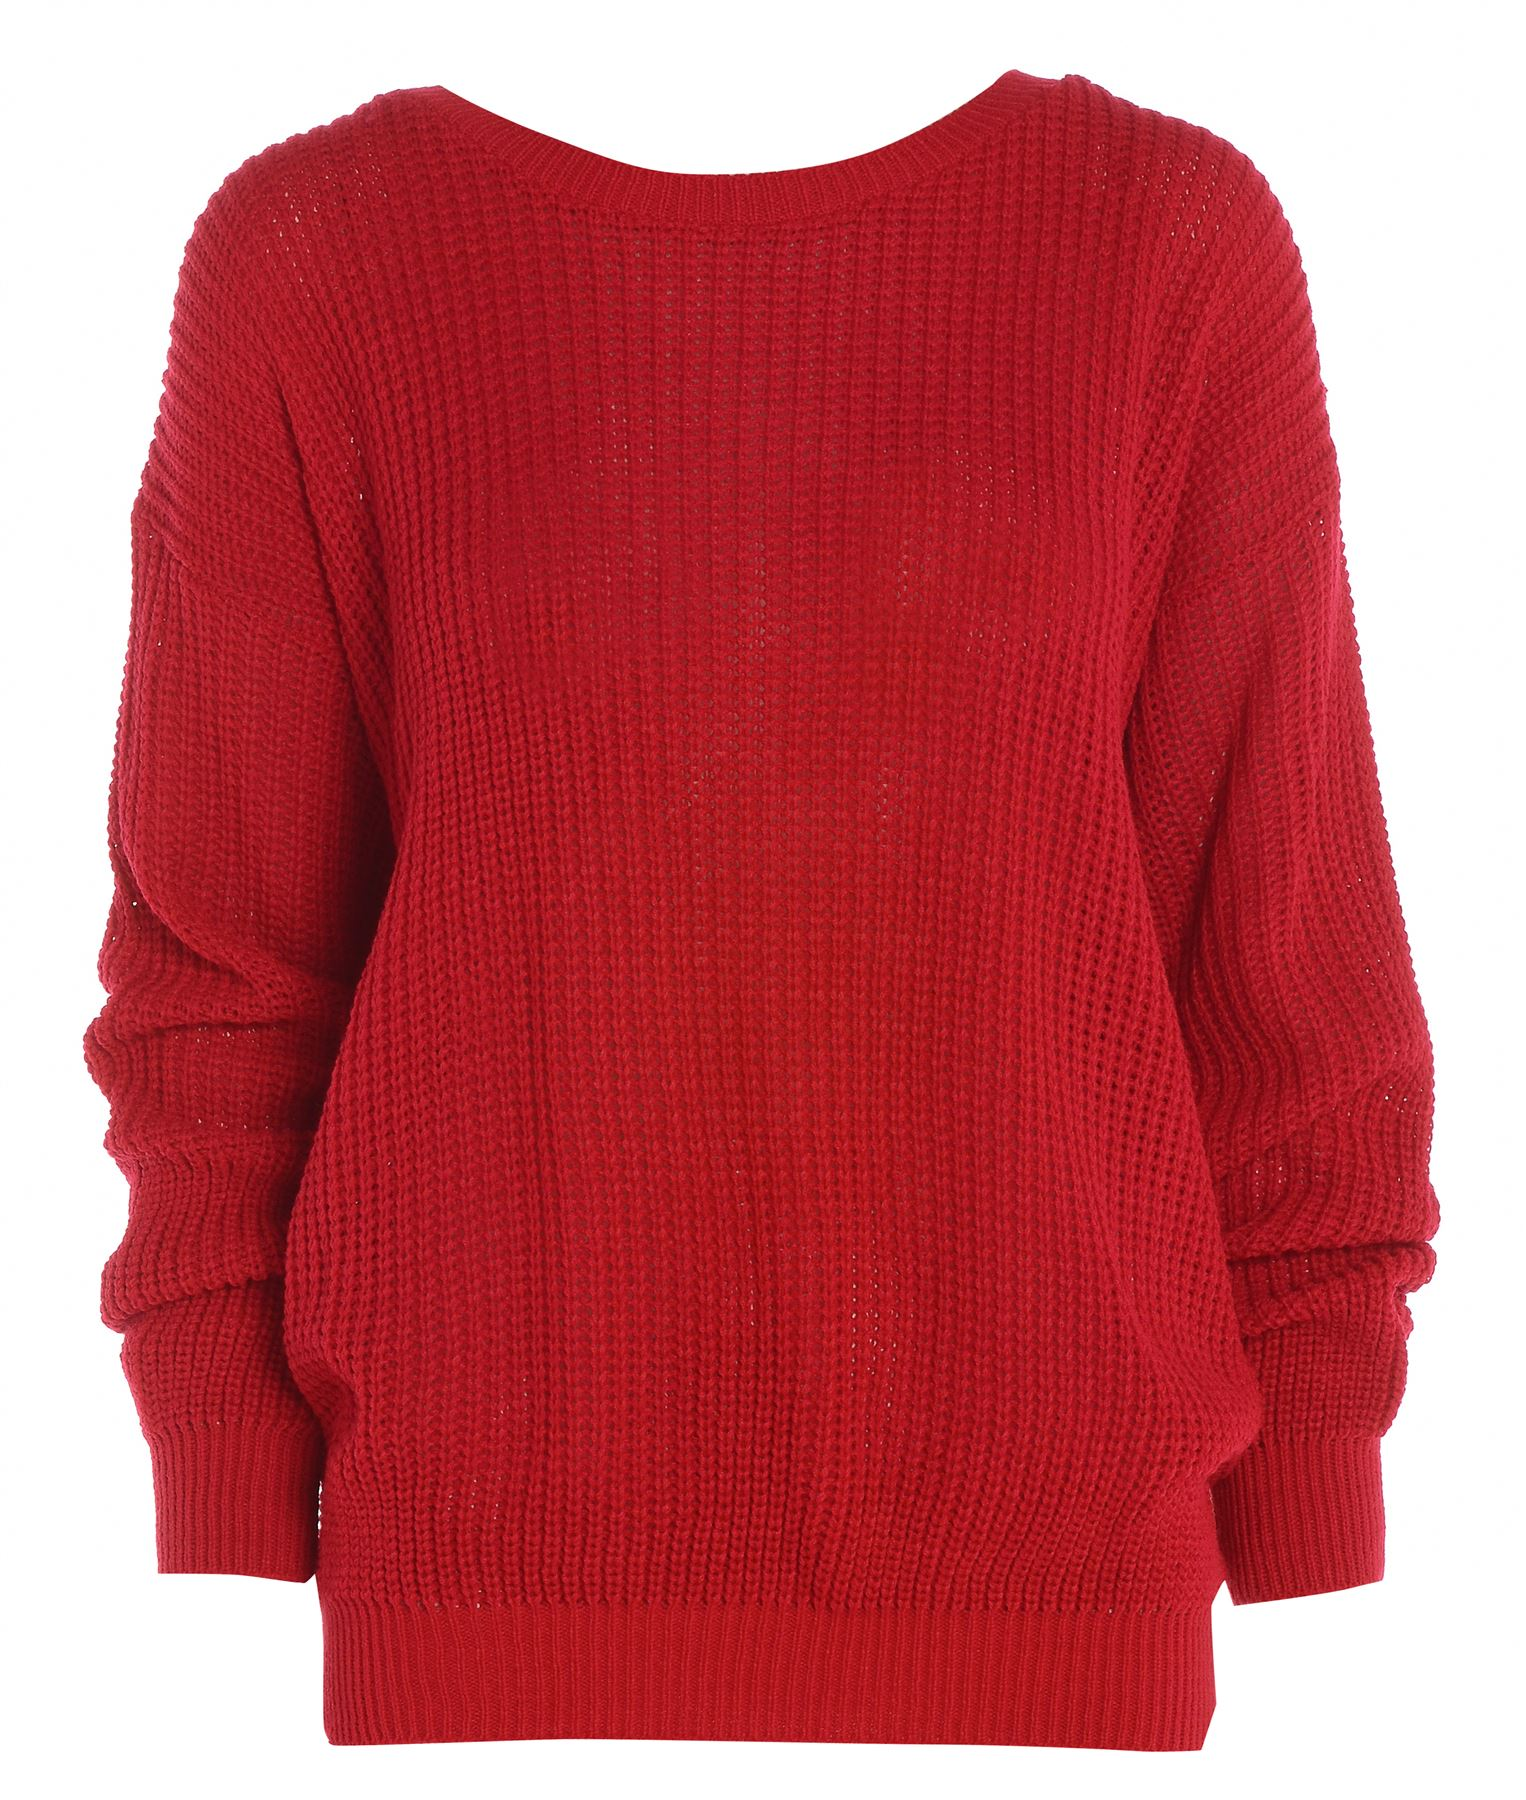 Ladies Womens Oversized Baggy Knitted Jumper Chunky ...